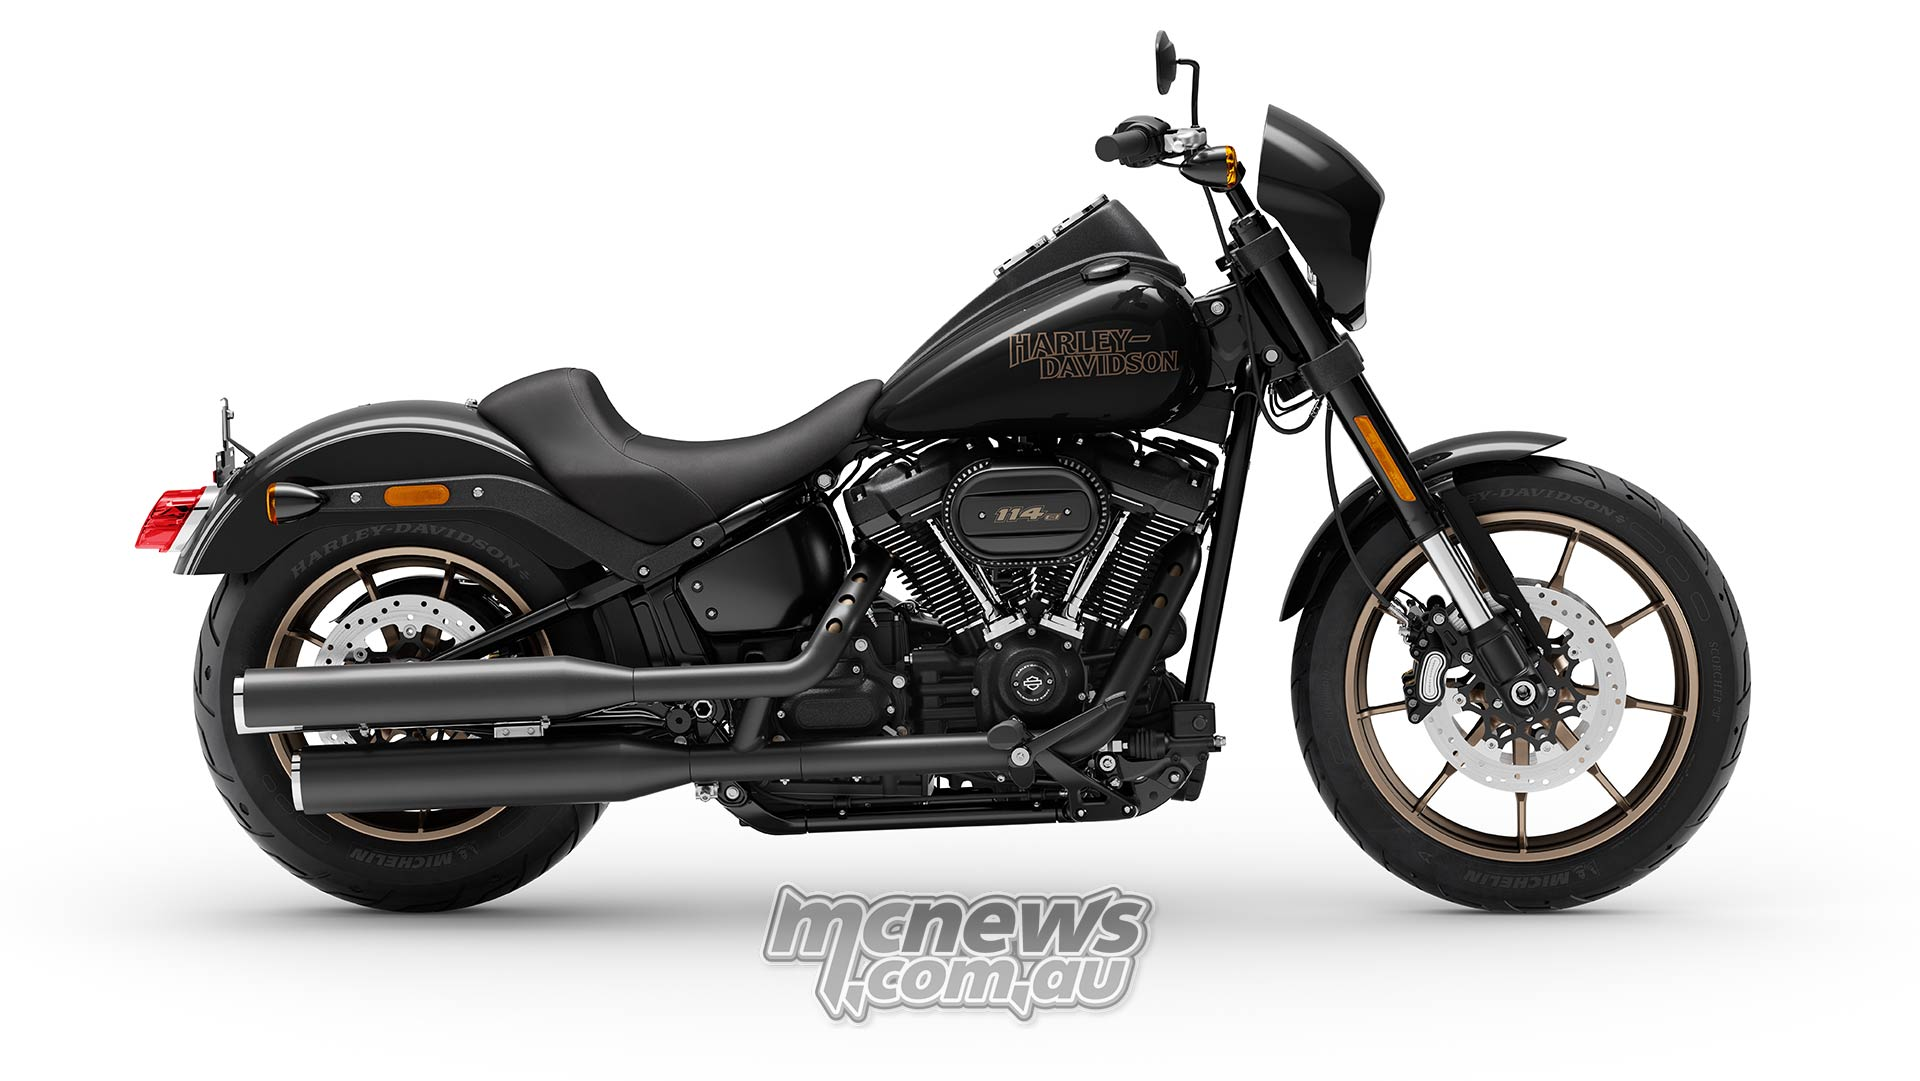 Harley Low Rider S FXLRS